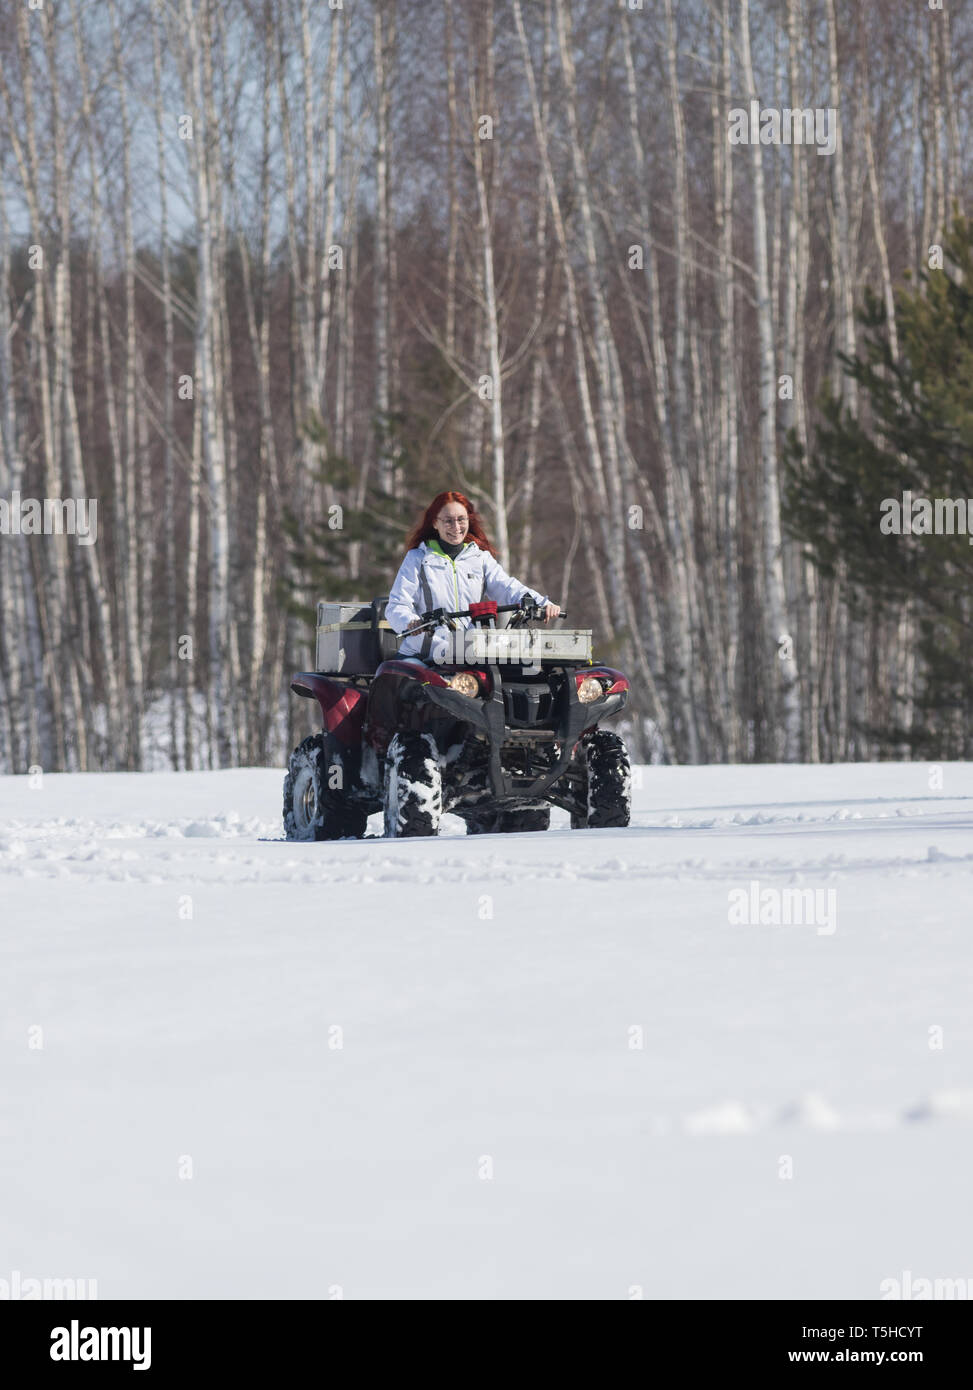 A winter forest. A woman with ginger hair in jacket riding snowmobile - Stock Image